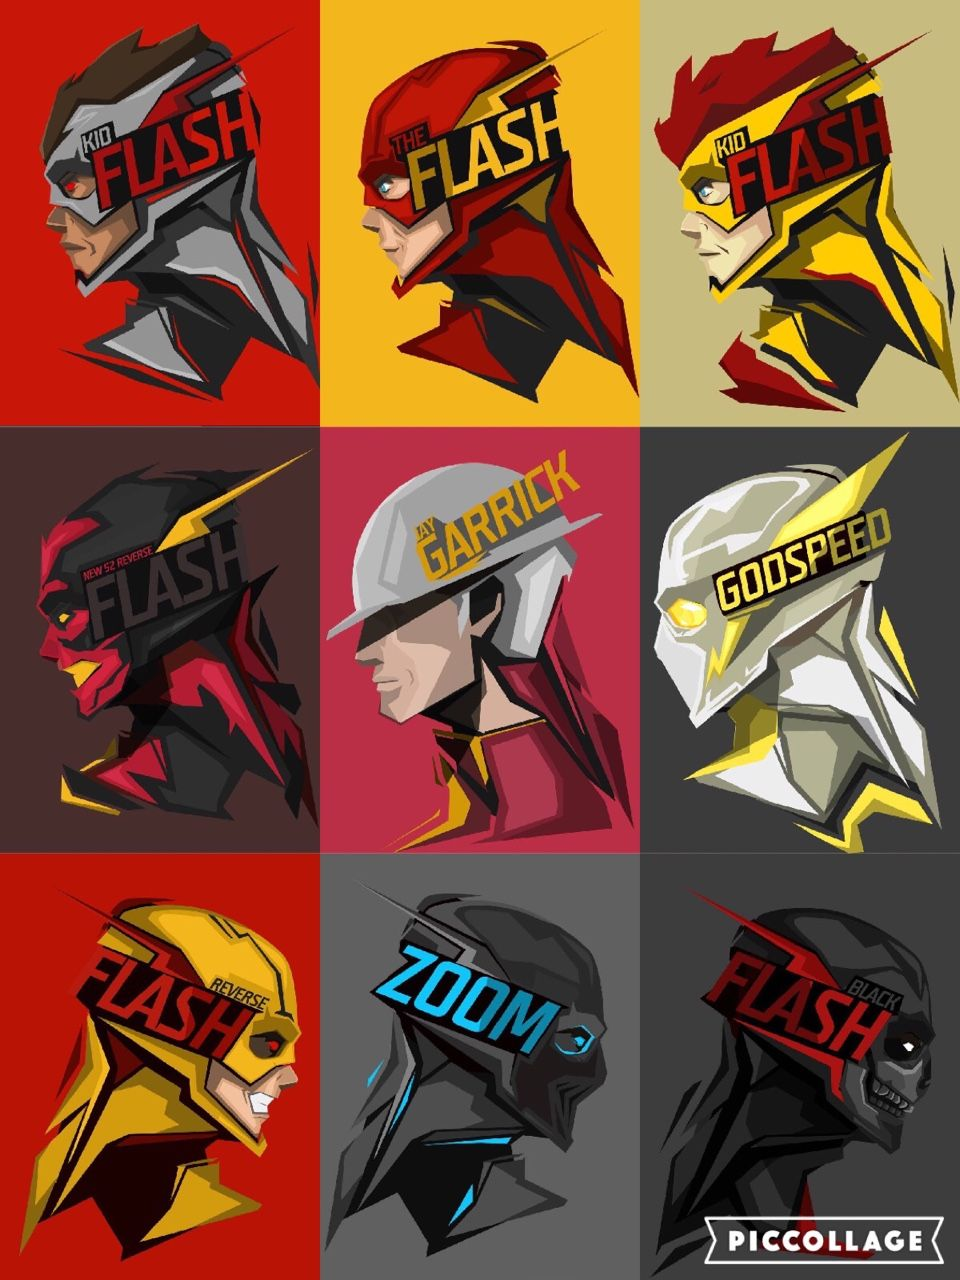 The Flash illustrated by Matt DeMino | Comic, Marvel and Superheroes